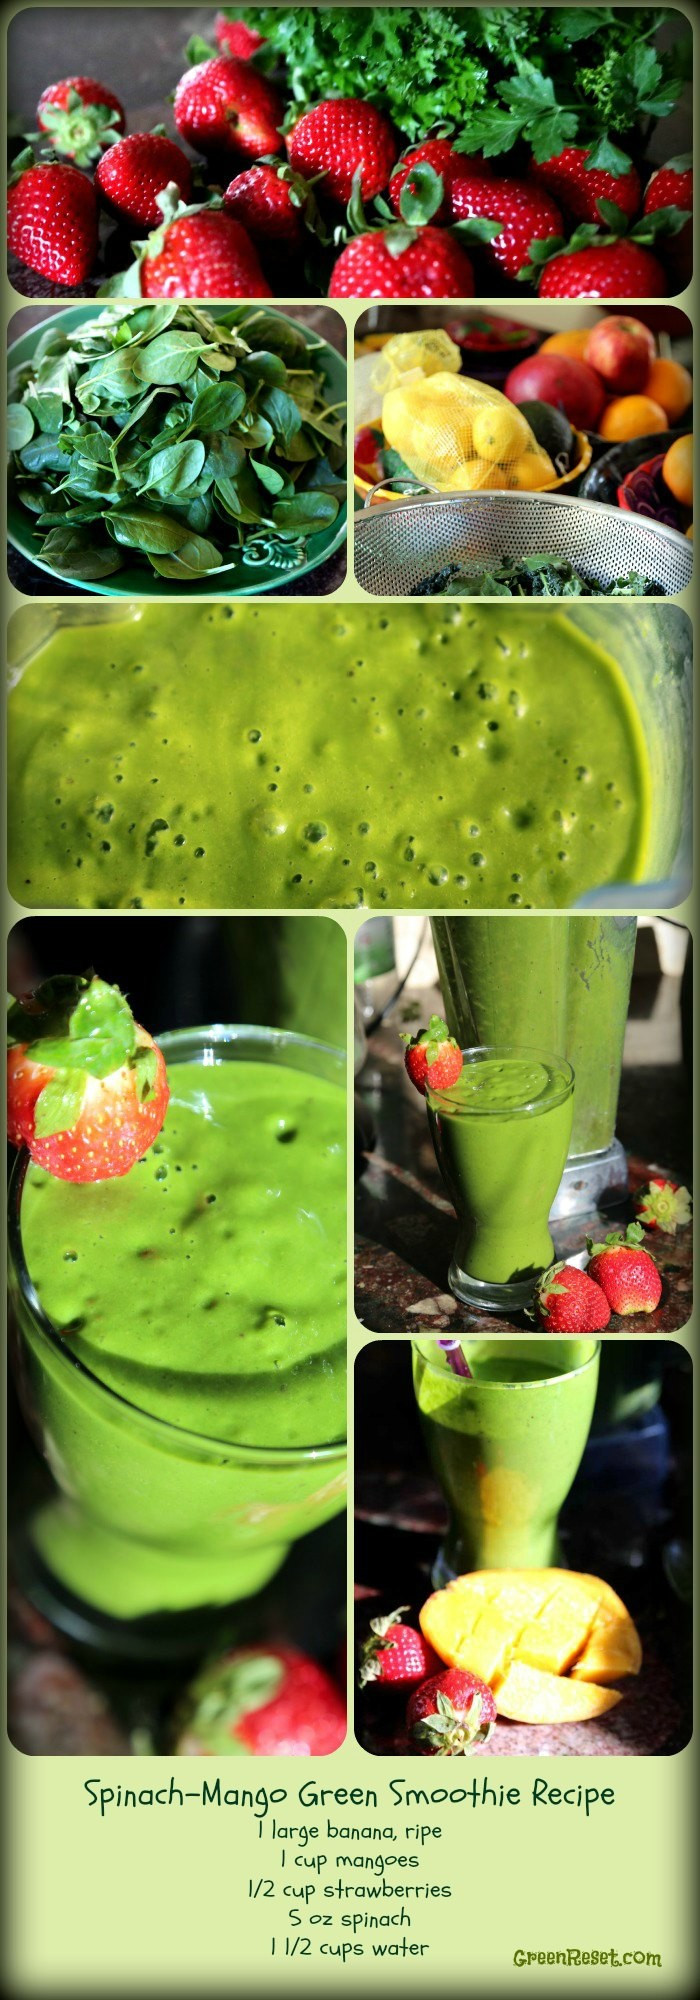 Healthy Green Smoothie Recipes  9 Breakfast Smoothies Plus 3 More Super Healthy Breakfast